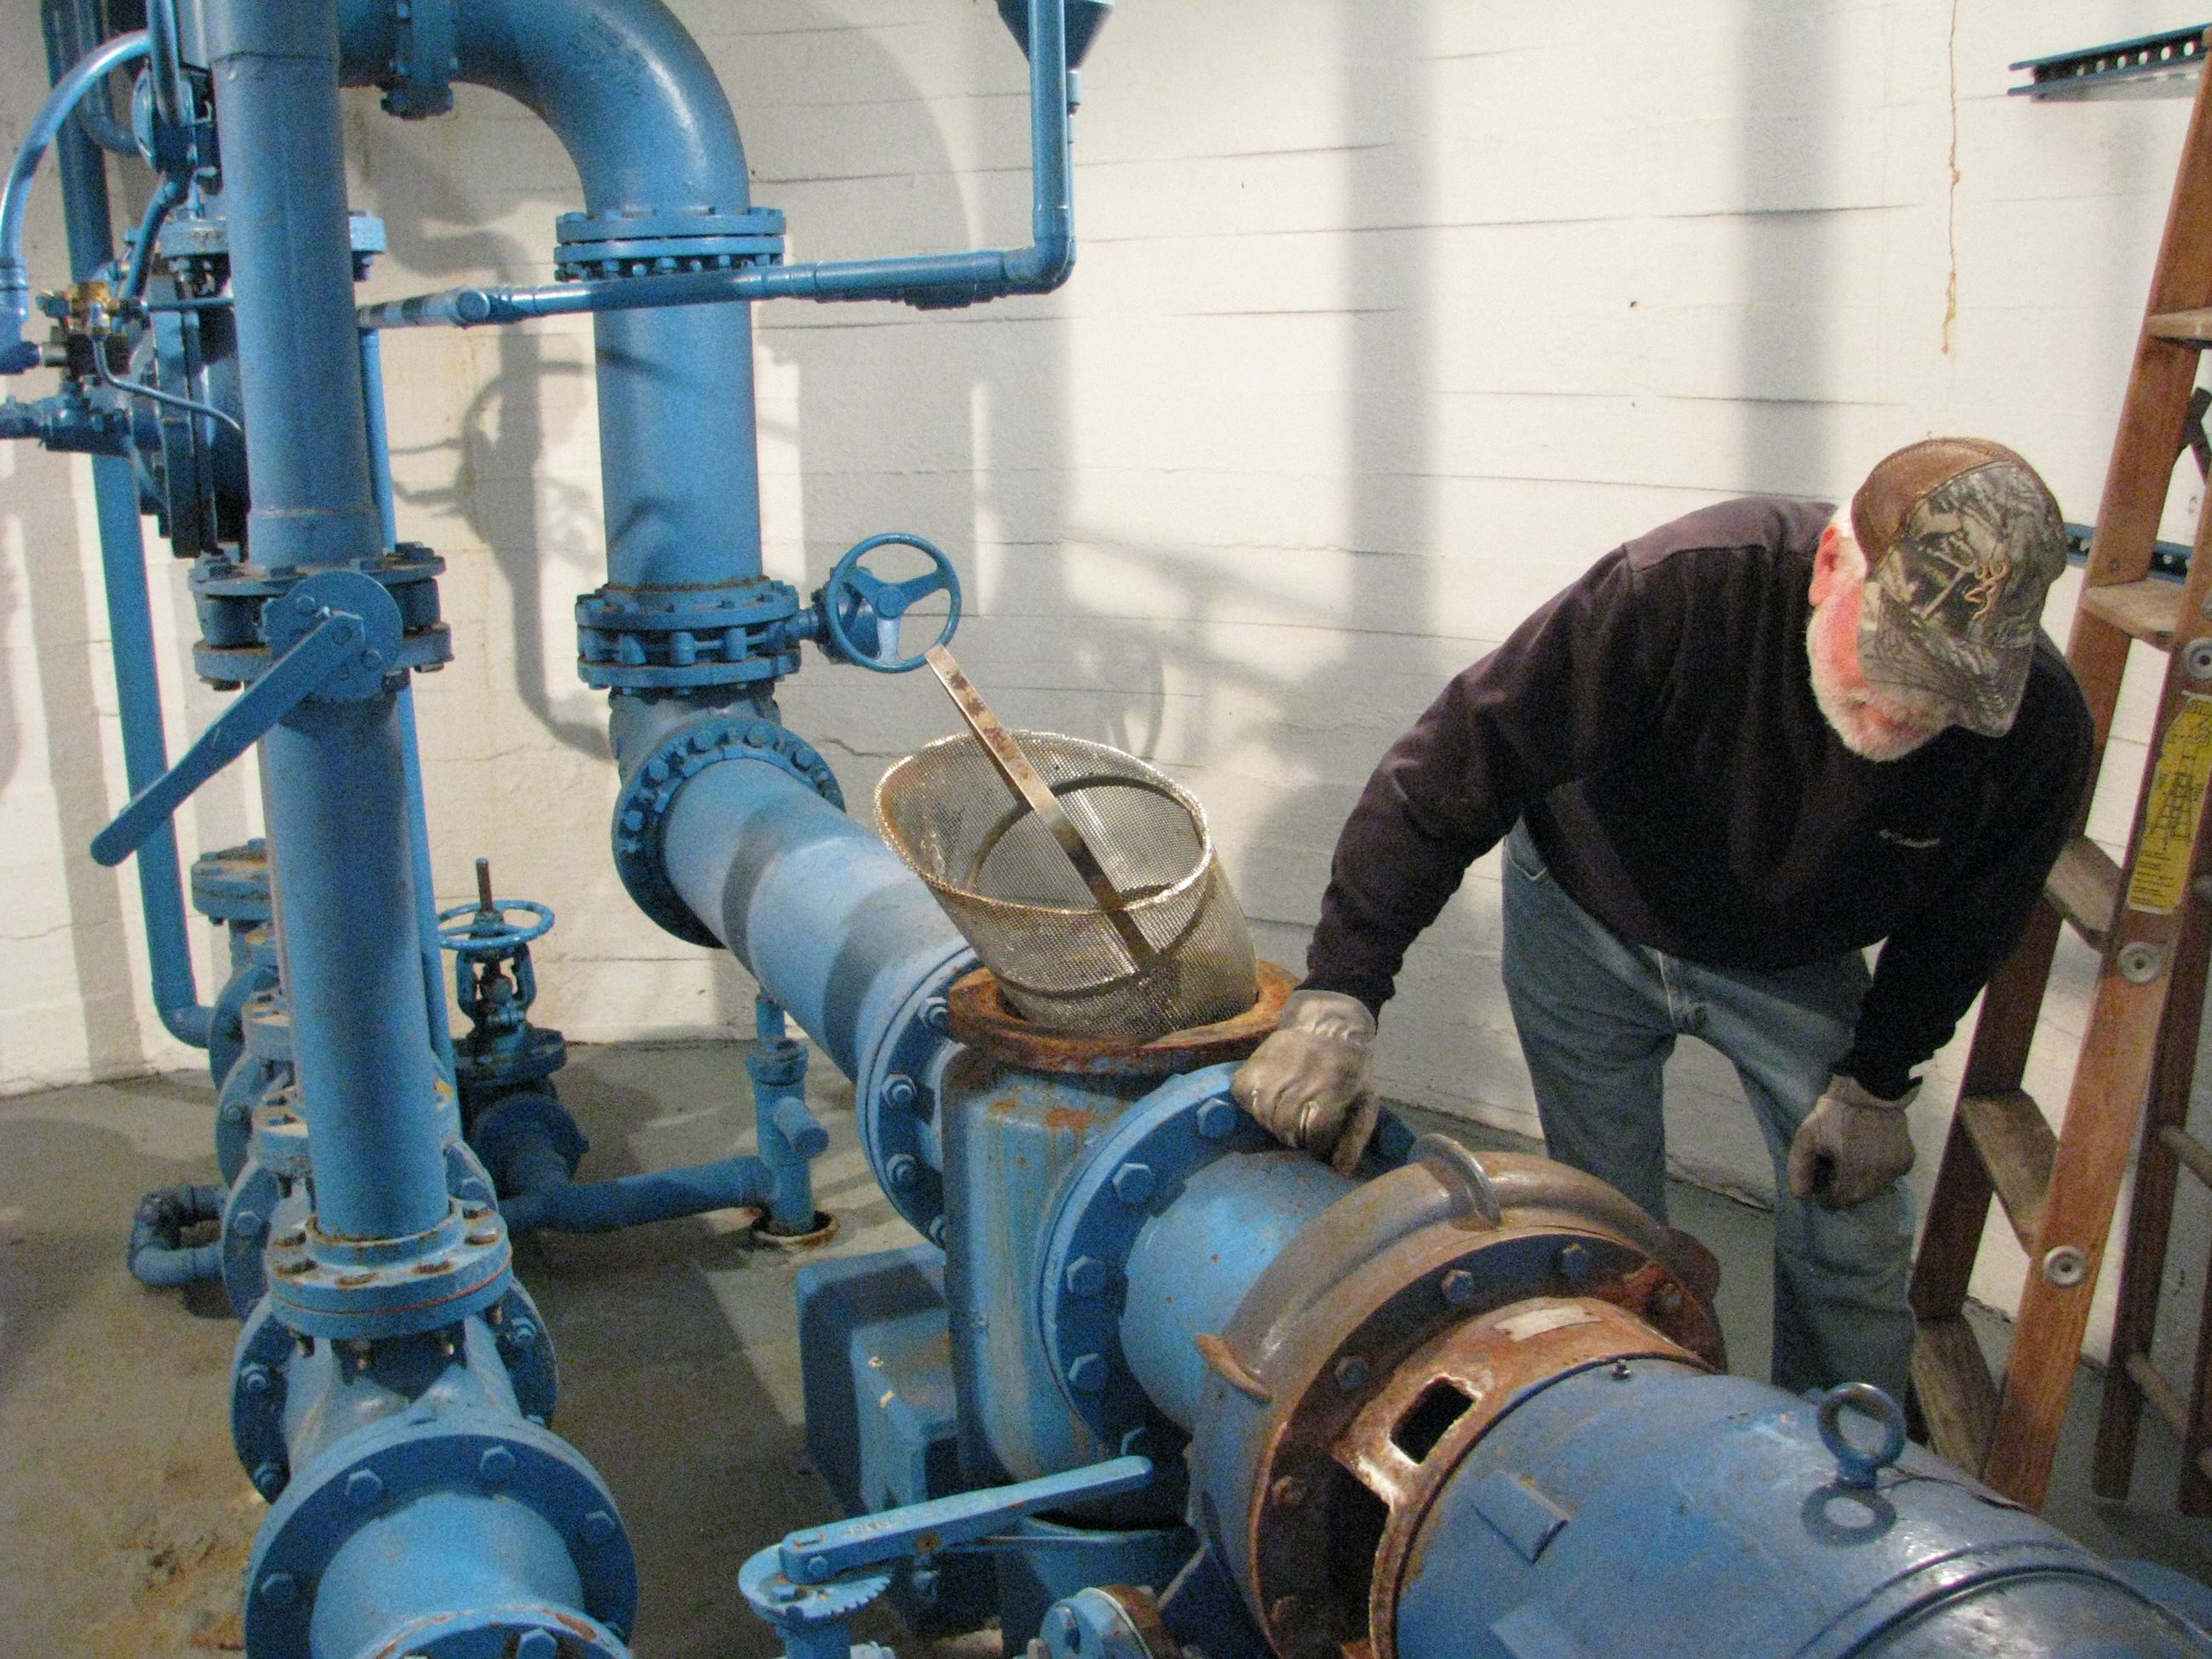 Water pumps, filters, and shut off valves